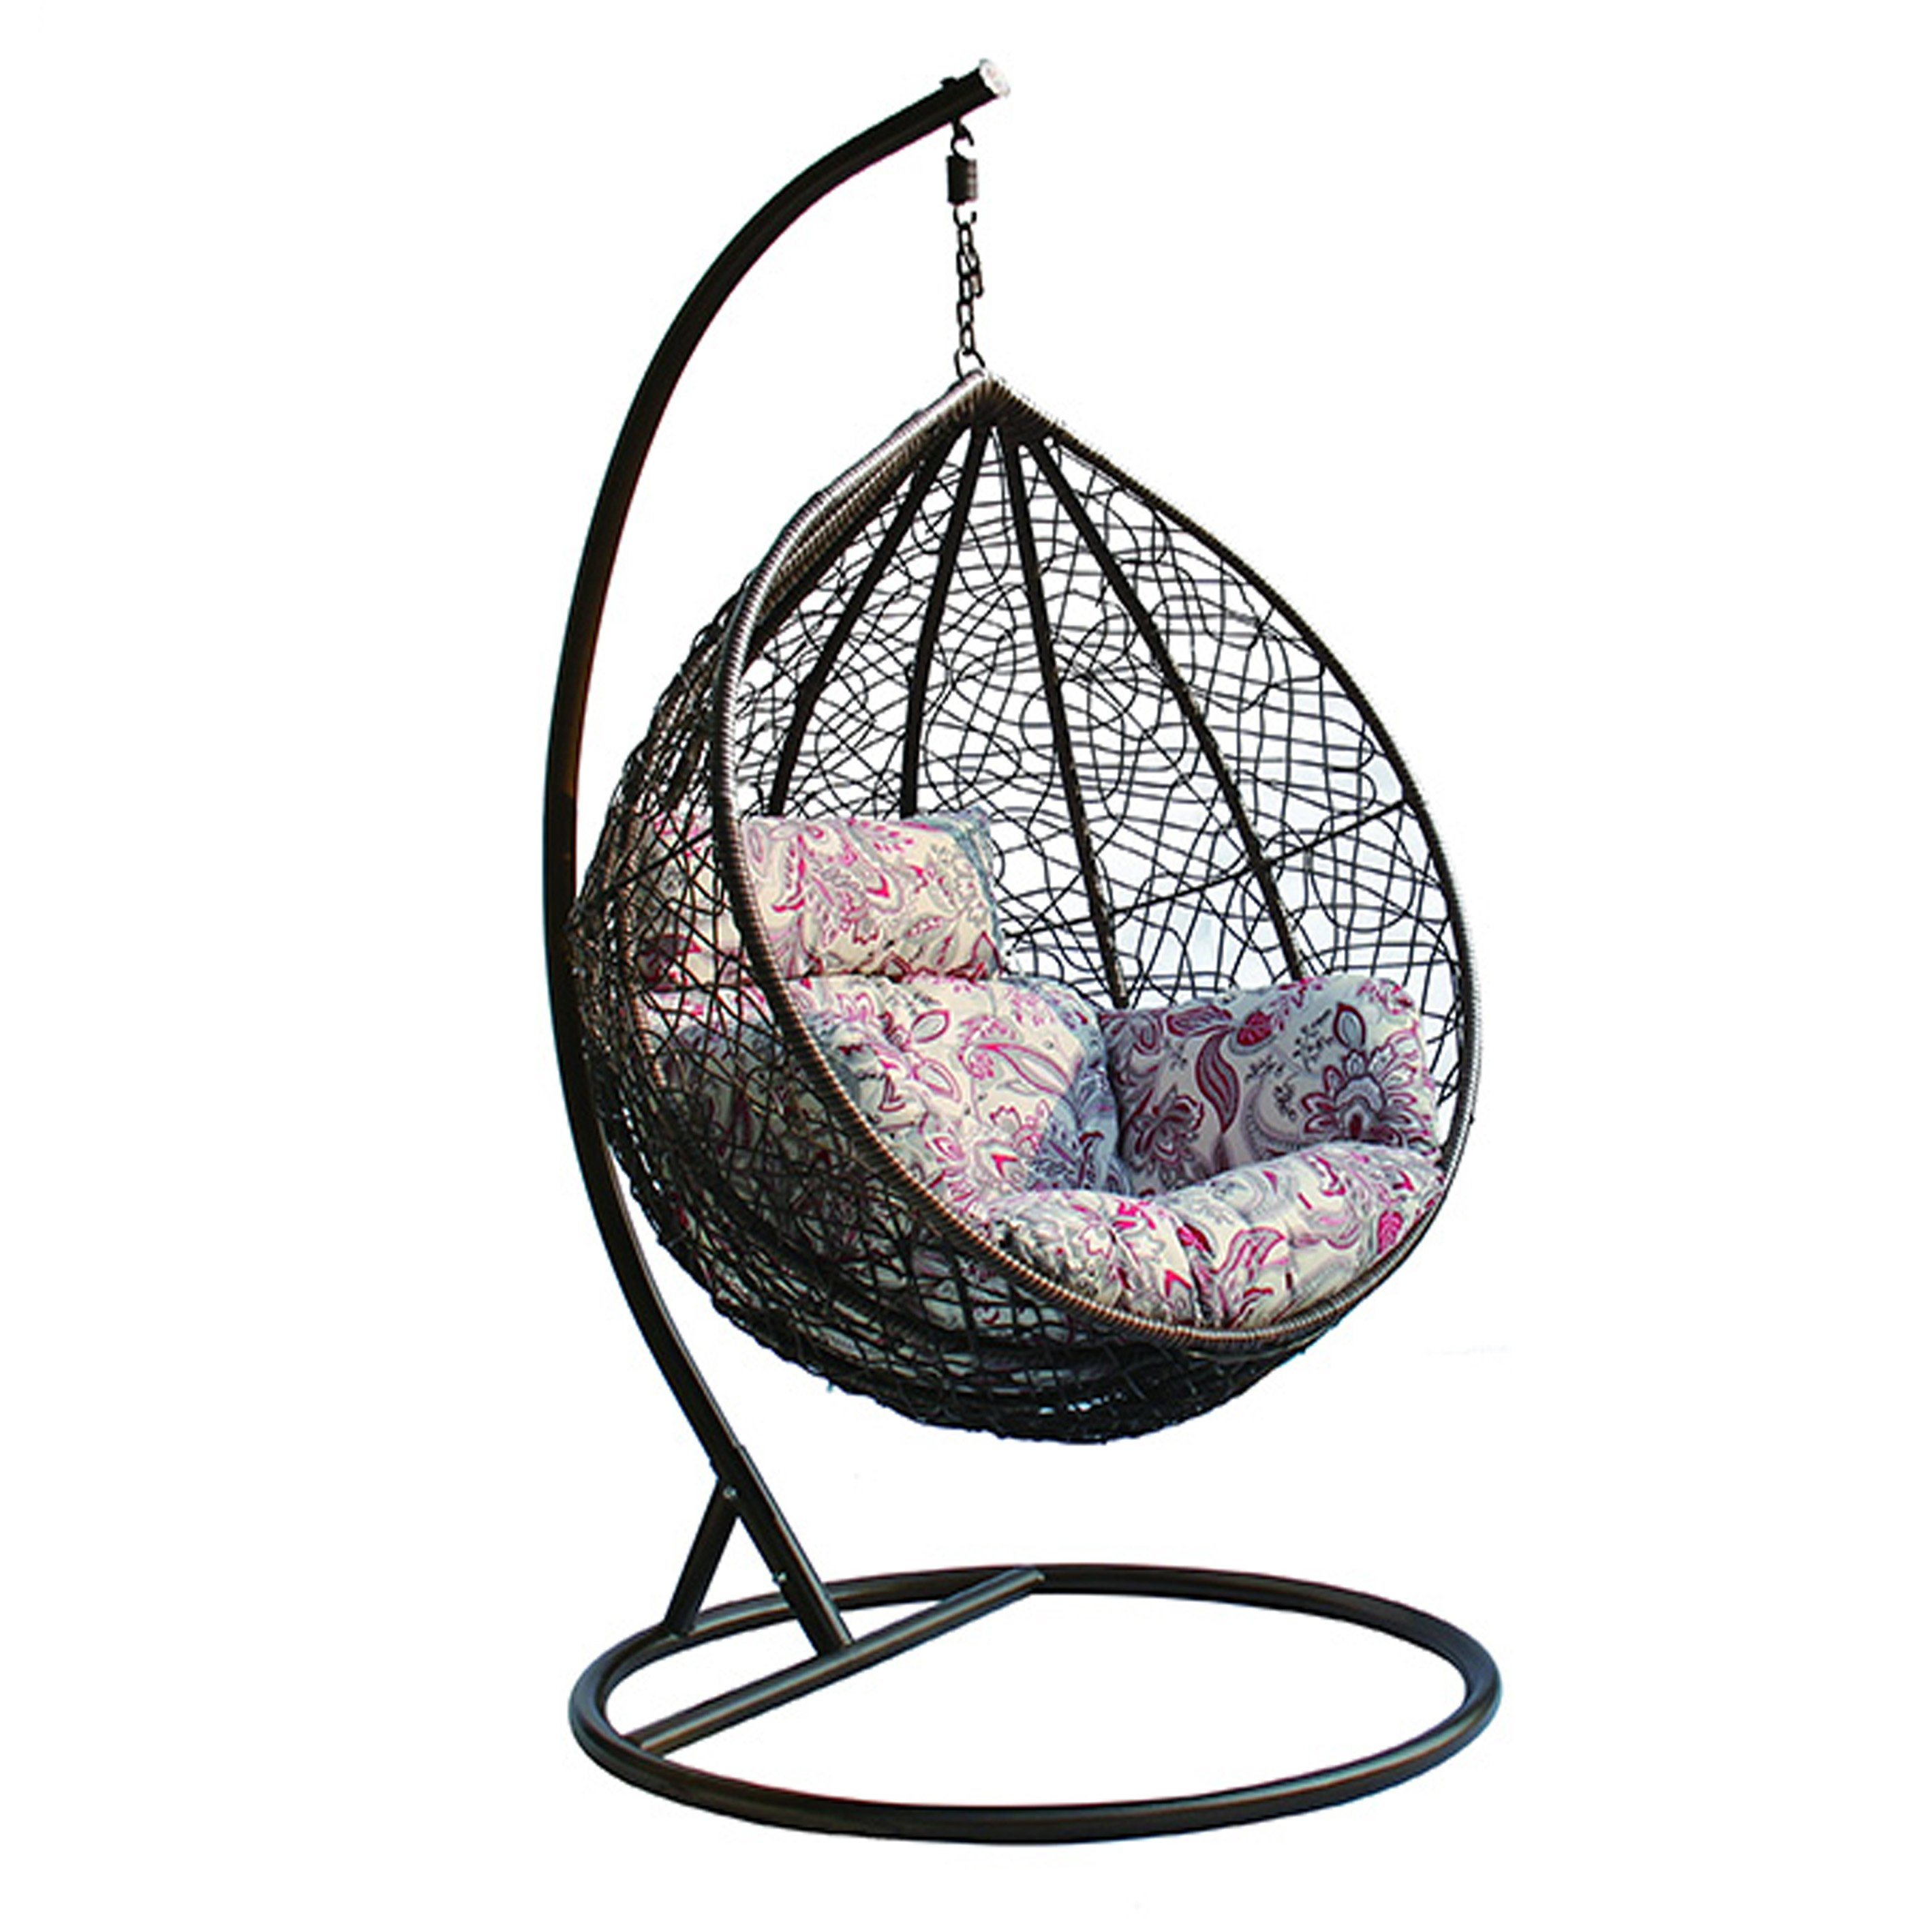 Picture of: China Outdoor Patio Garden Rattan Wicker Egg Shaped Hanging Cane Swing Chair With Stand China Garden Egg Chair Outdoor Wicker Chairs